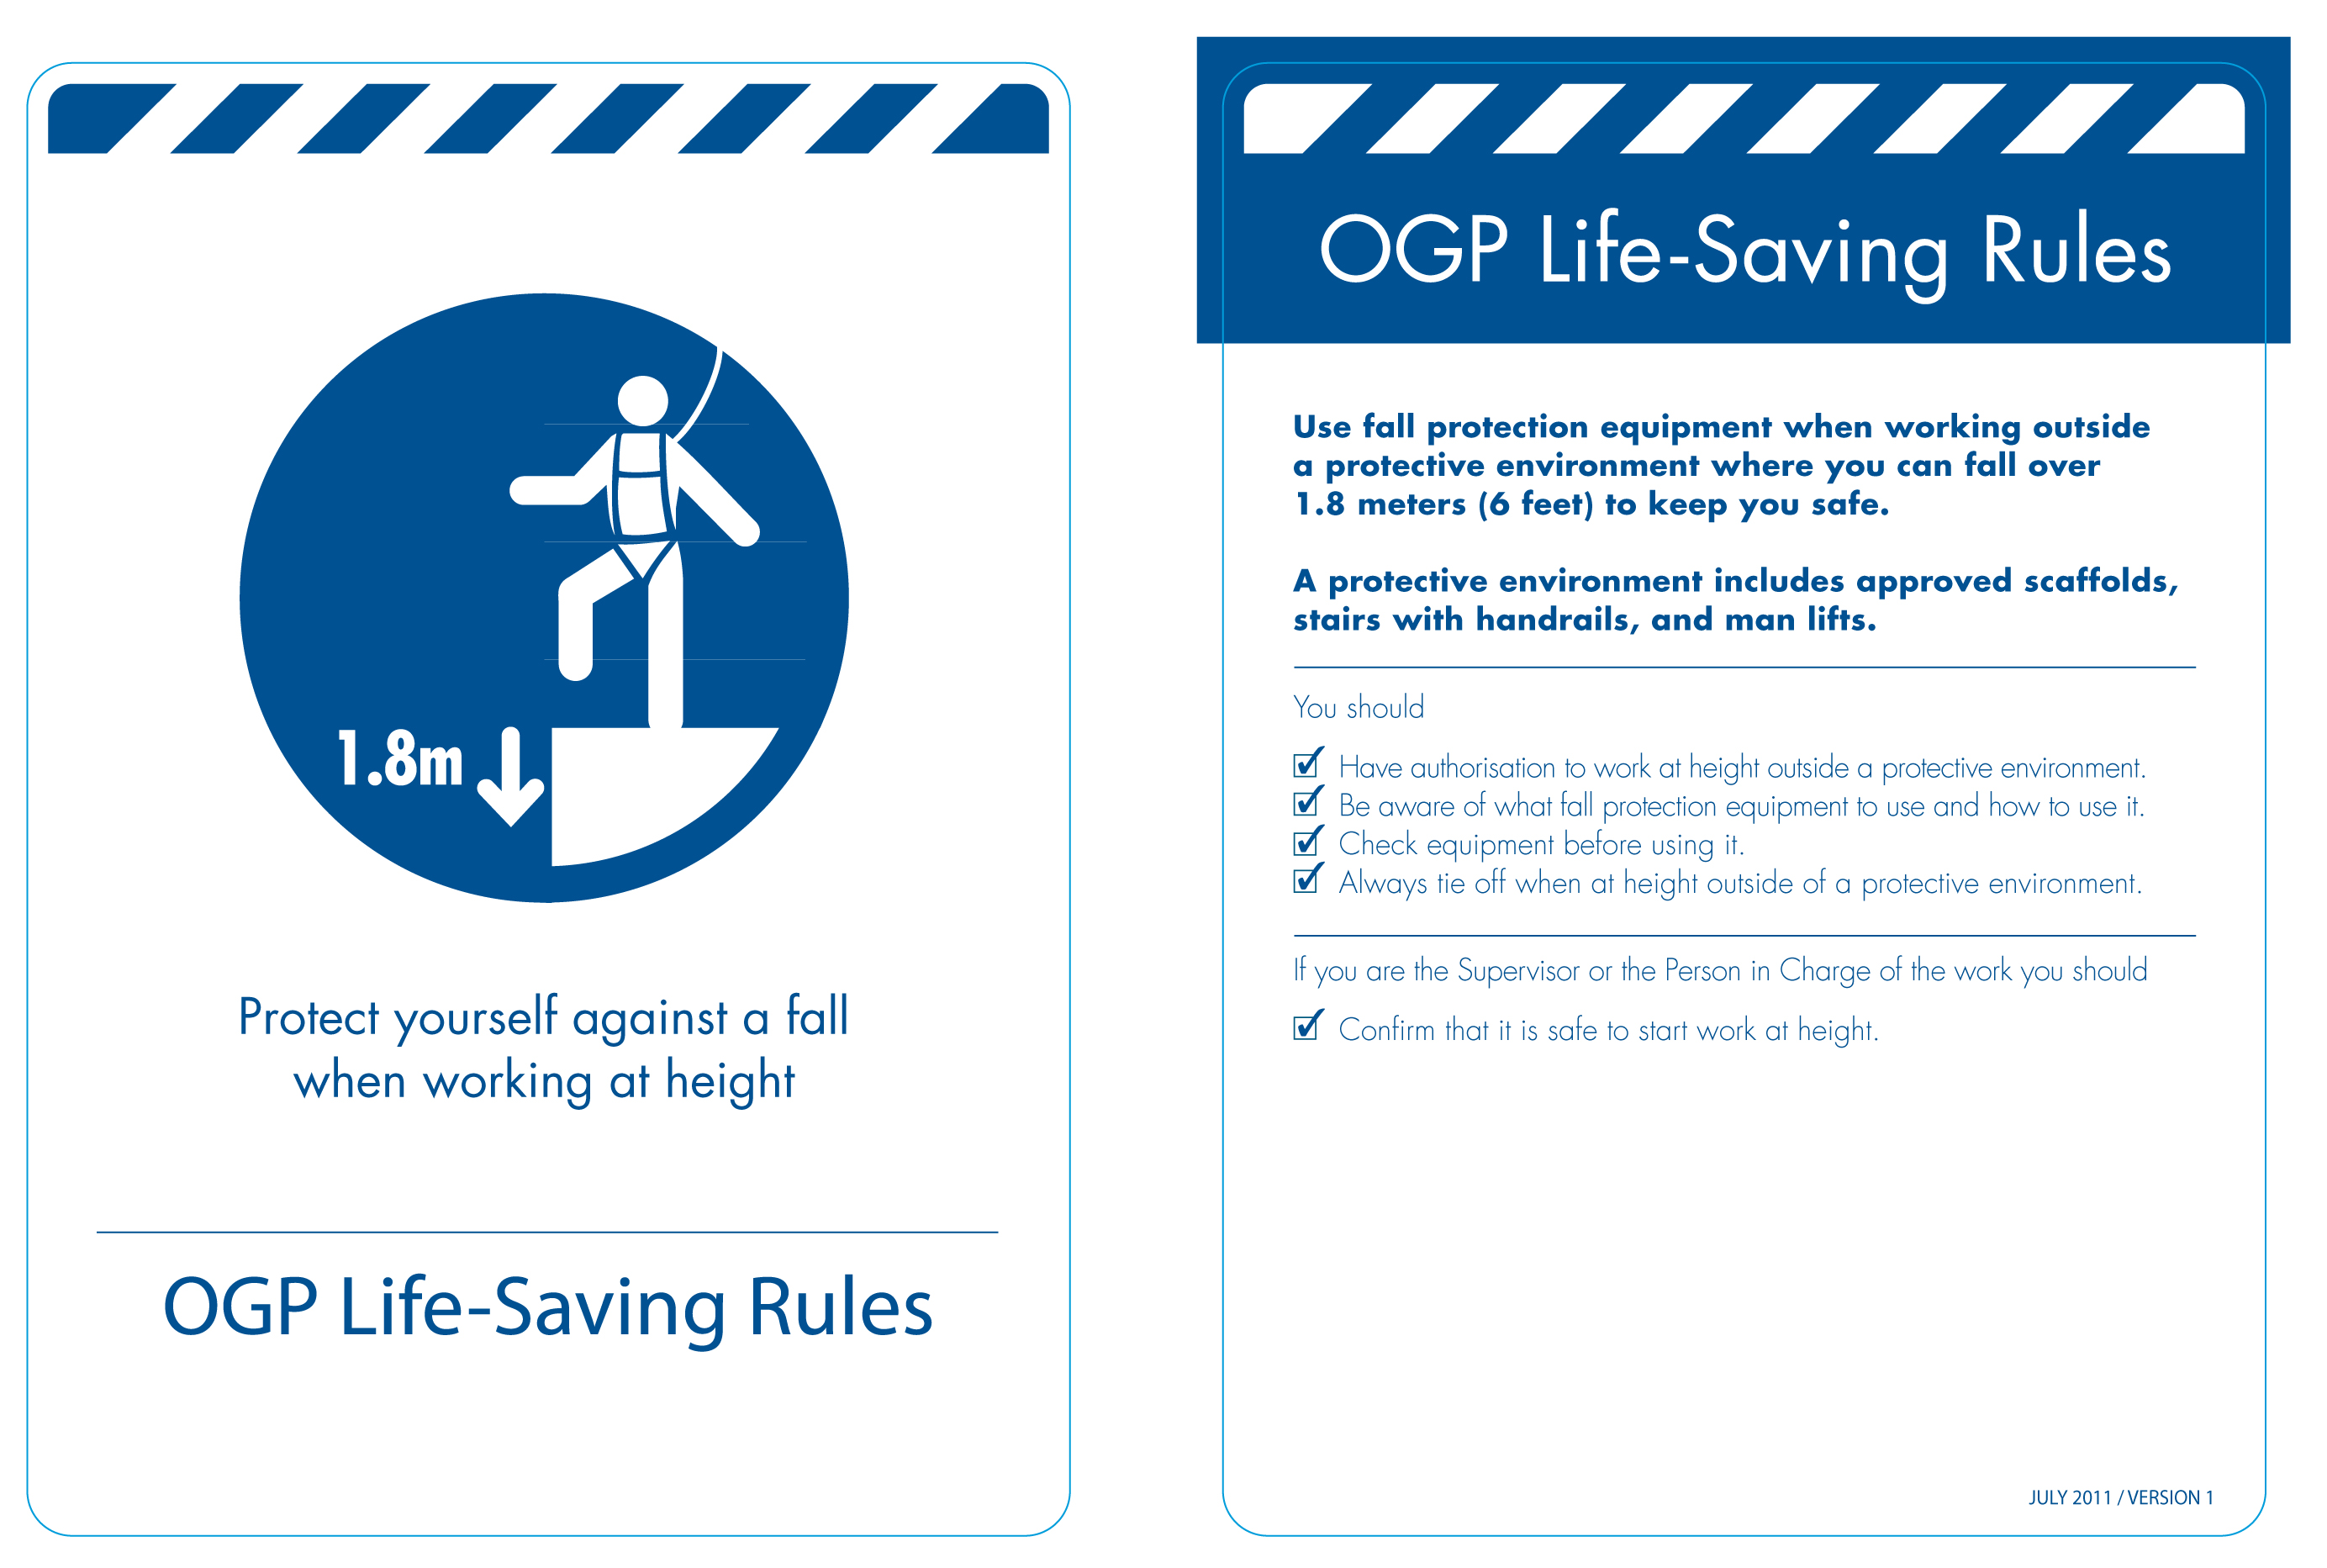 Shell 12 Life Saving Rules http://eihofblog.wordpress.com/2012/03/29/ogp-publish-report-on-the-use-of-life-saving-rules/